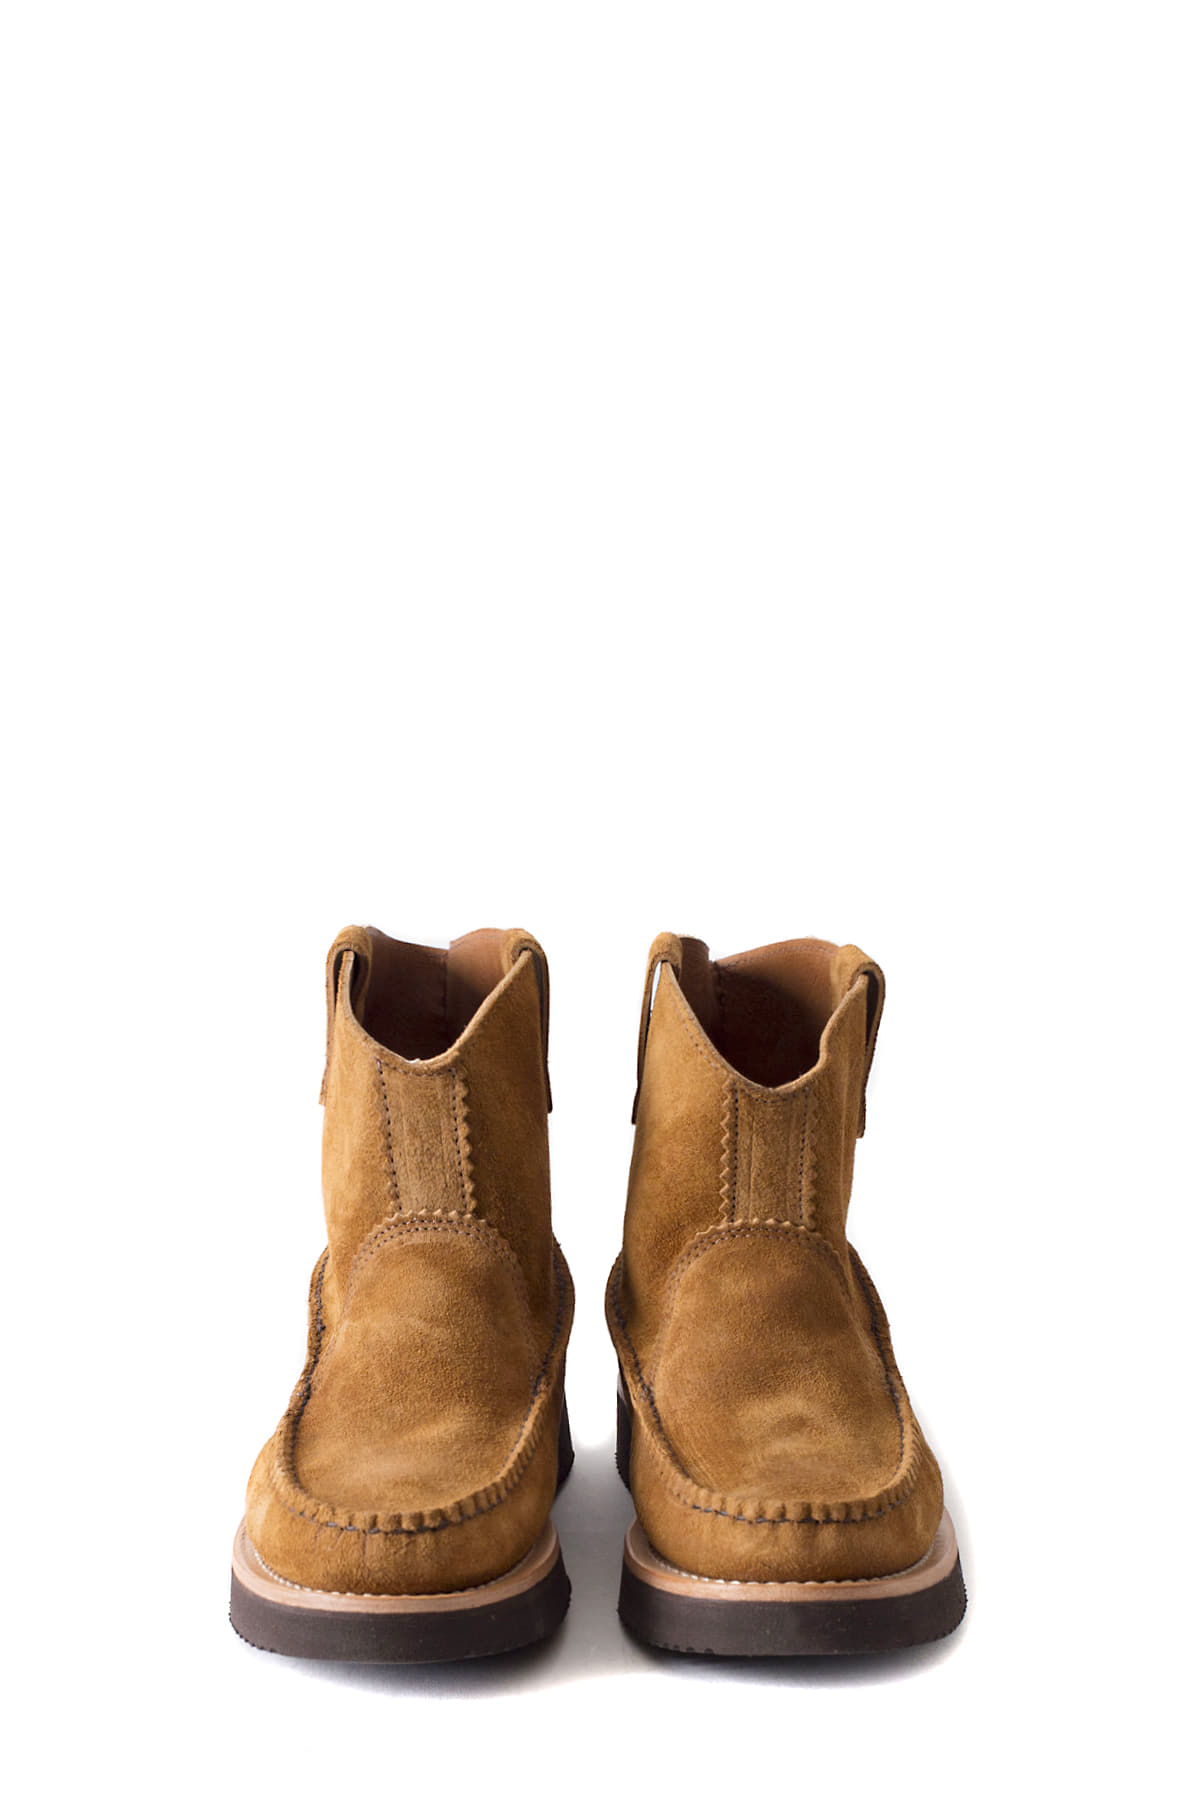 Yuketen : All Handsewn Short Pull-On Boots (Brown)